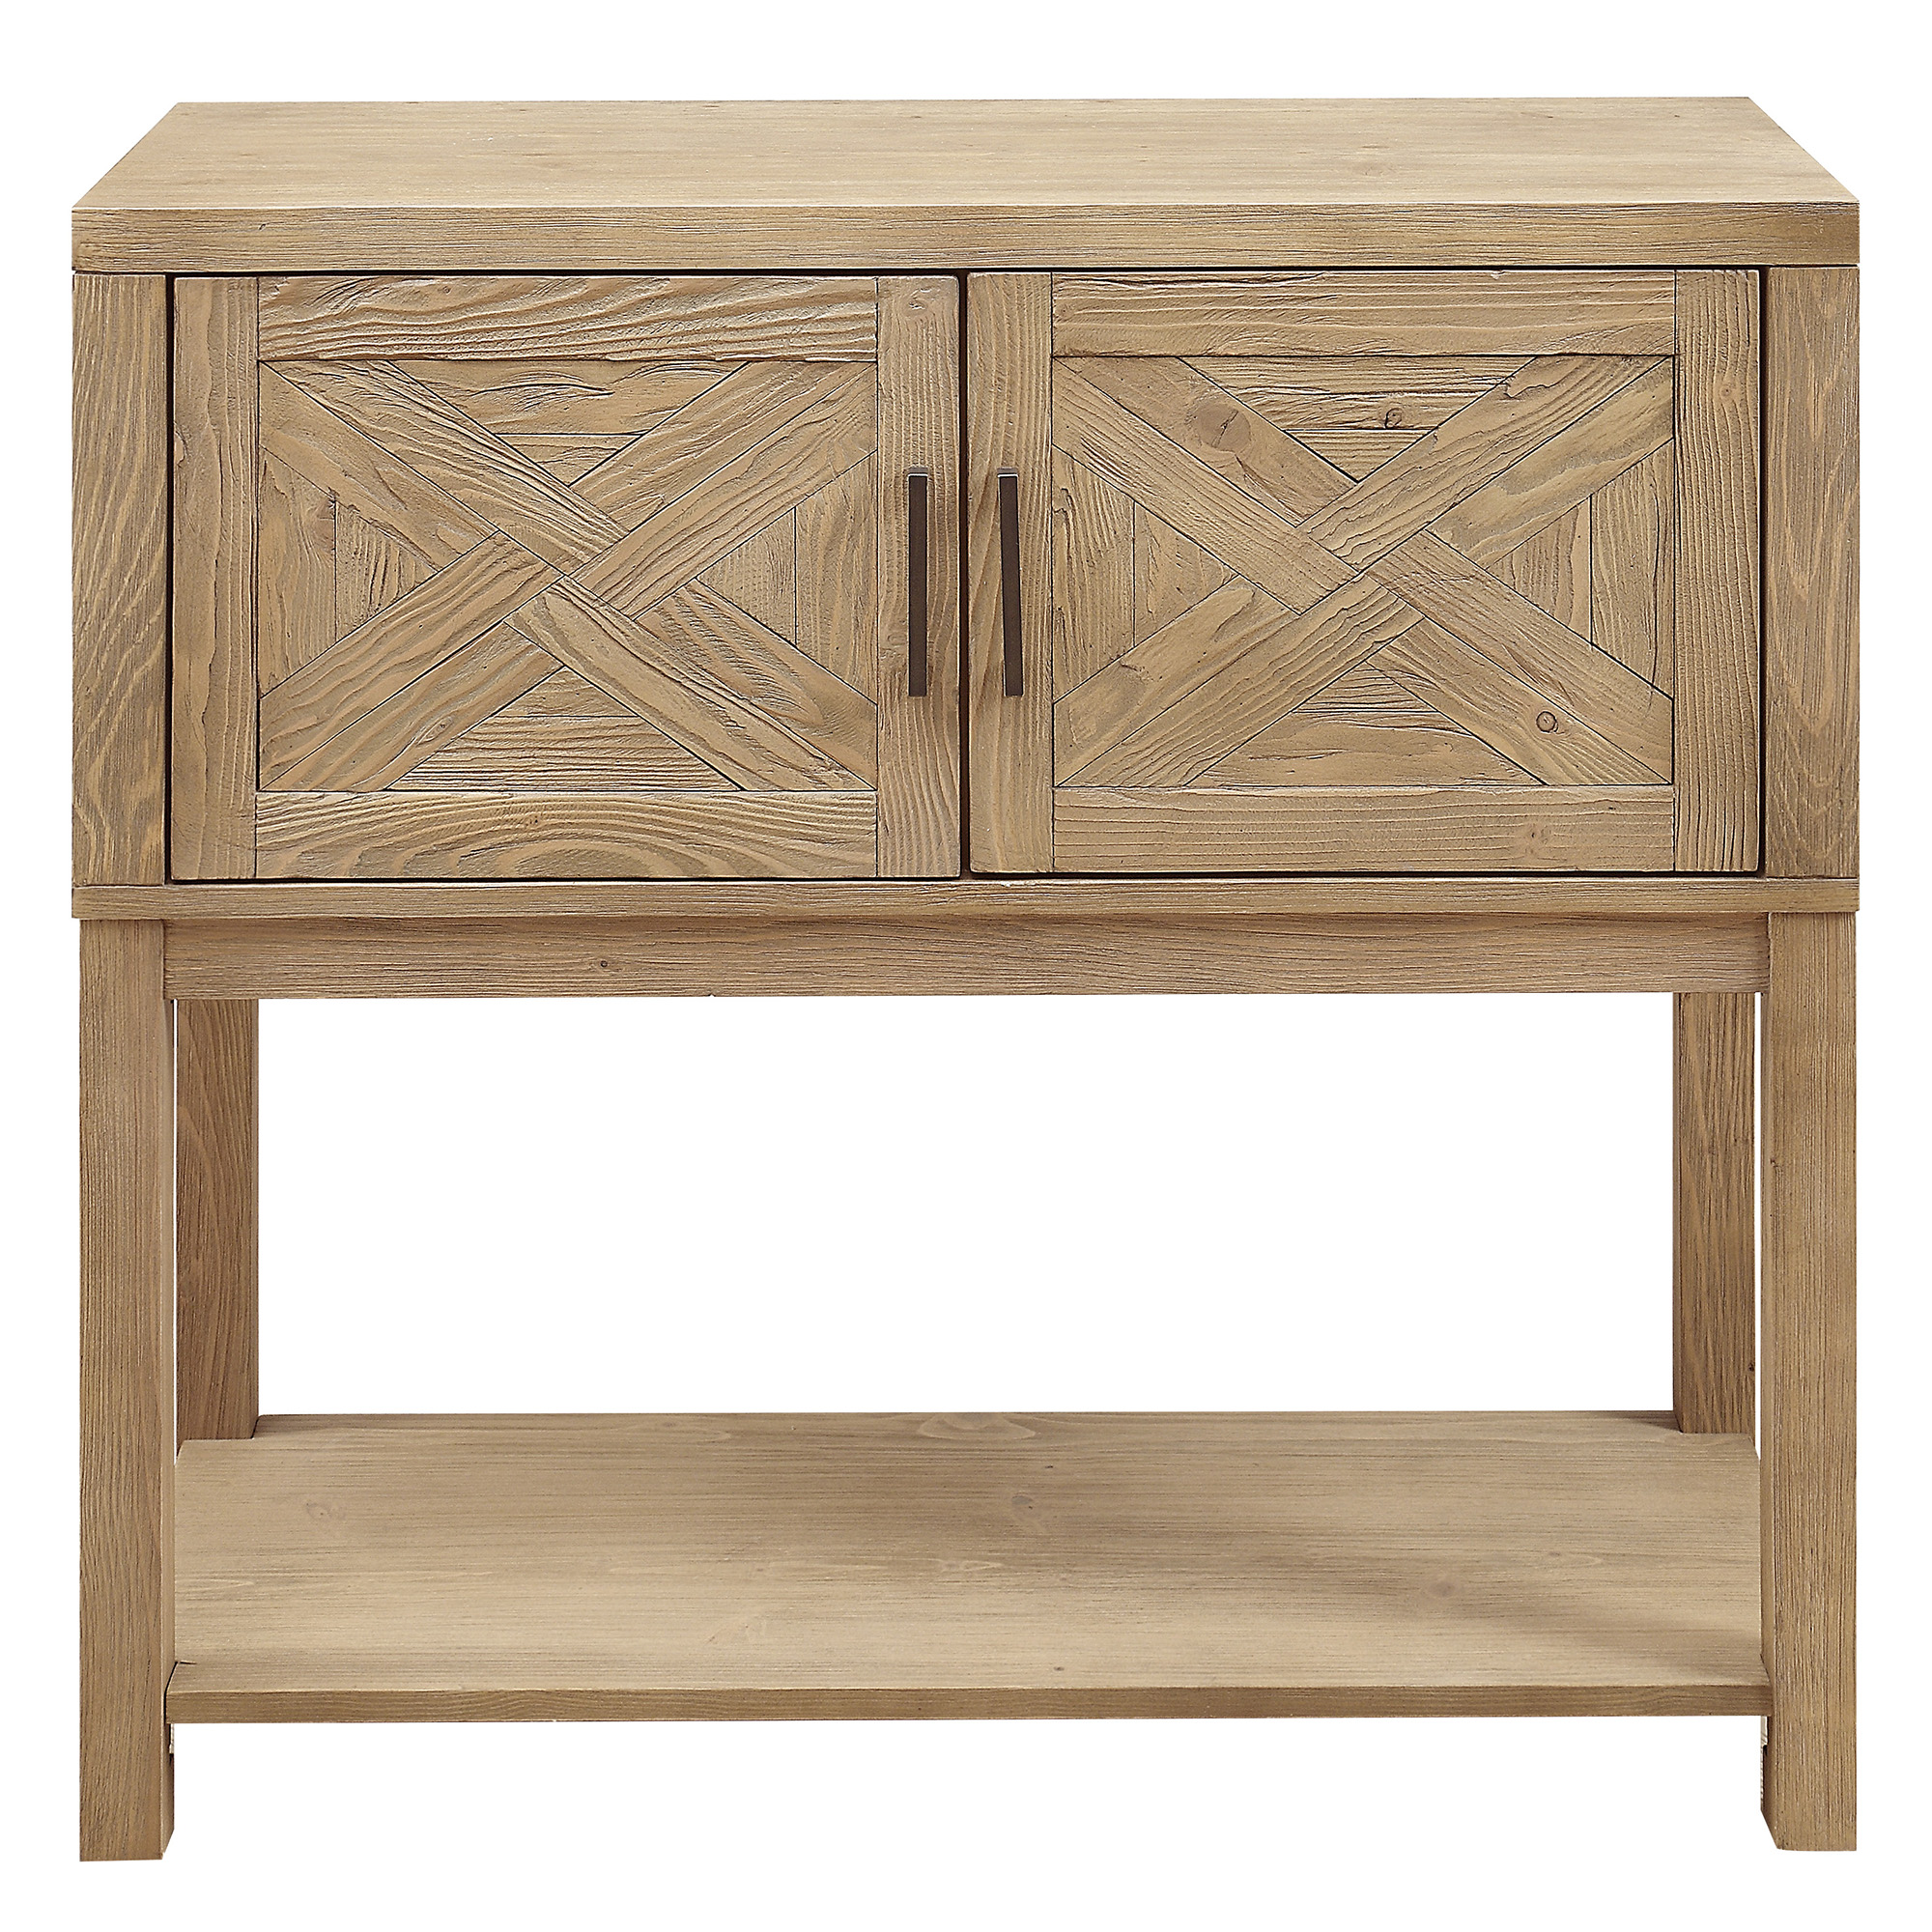 HAGER-CONSOLE/CABINET-NATURAL, 841173033118, Console Table by Midha Furniture to Brampton, Mississauga, Etobicoke, Toronto, Scraborough, Caledon, Oakville, Markham, Ajax, Pickering, Oshawa, Richmondhill, Kitchener, Hamilton and GTA area